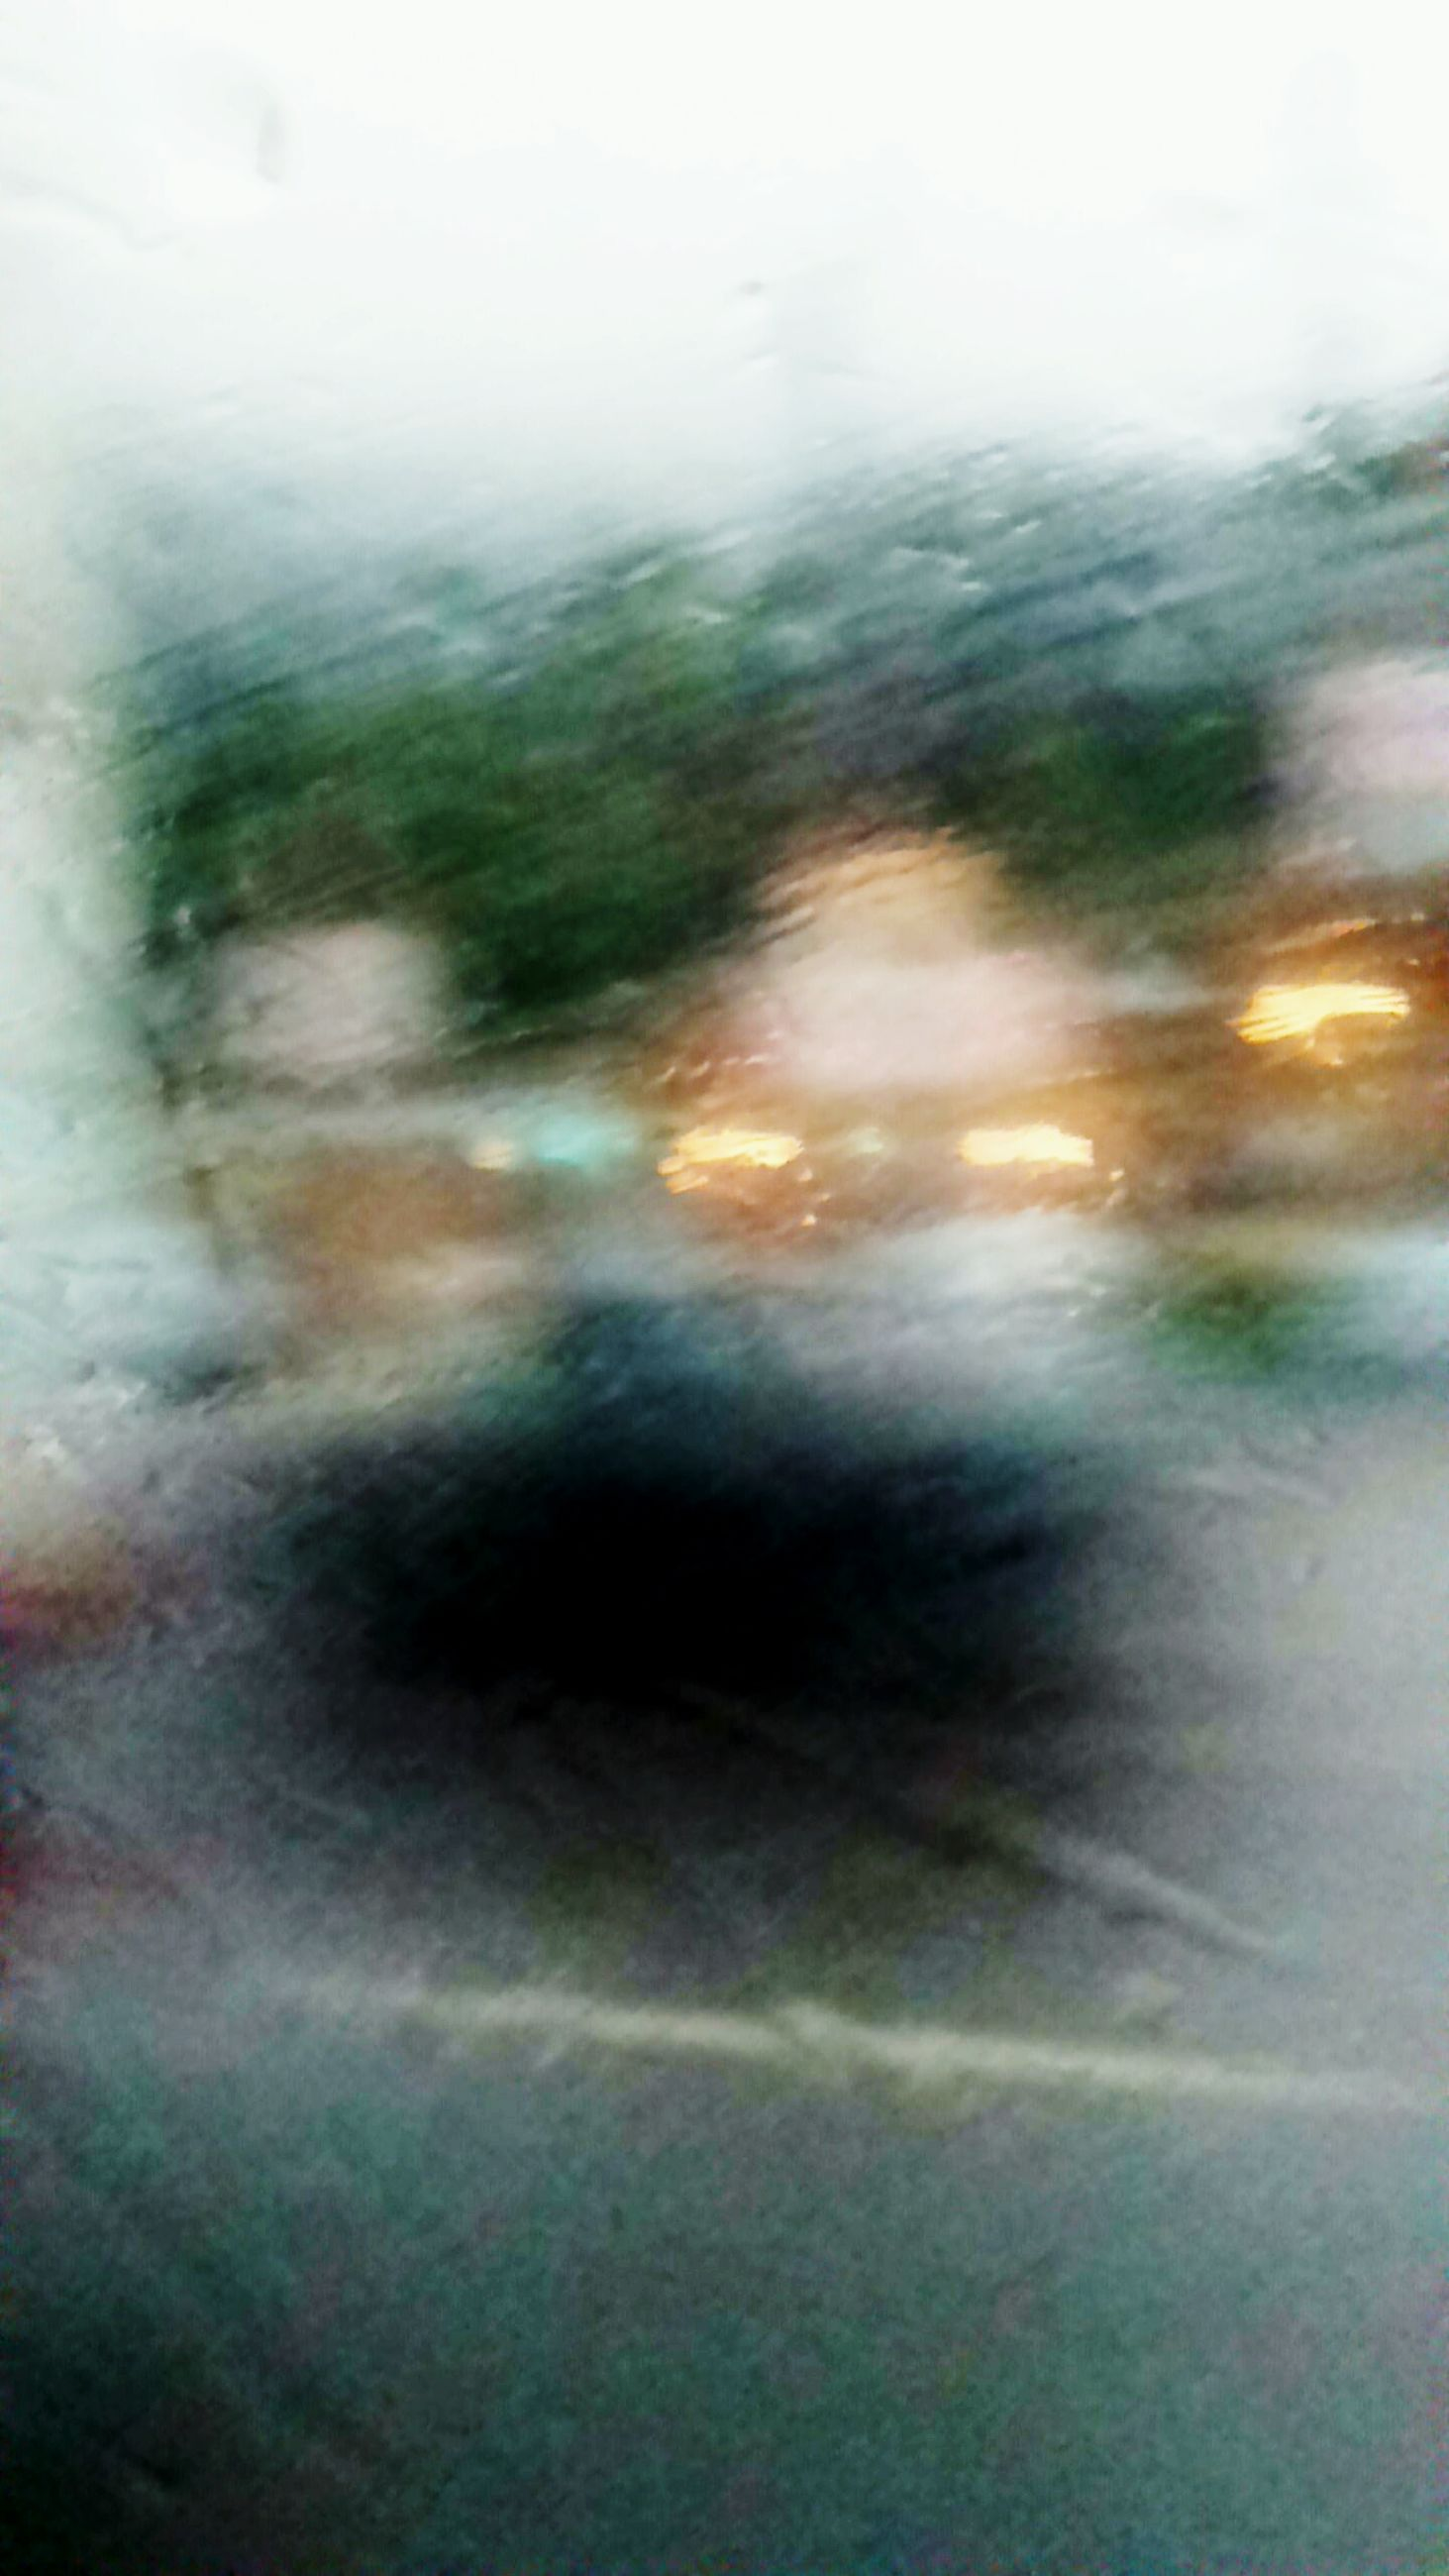 blurred motion, transportation, defocused, mode of transport, motion, road, travel, street, land vehicle, on the move, rain, window, water, blurred, city life, outdoors, blur, journey, multi colored, day